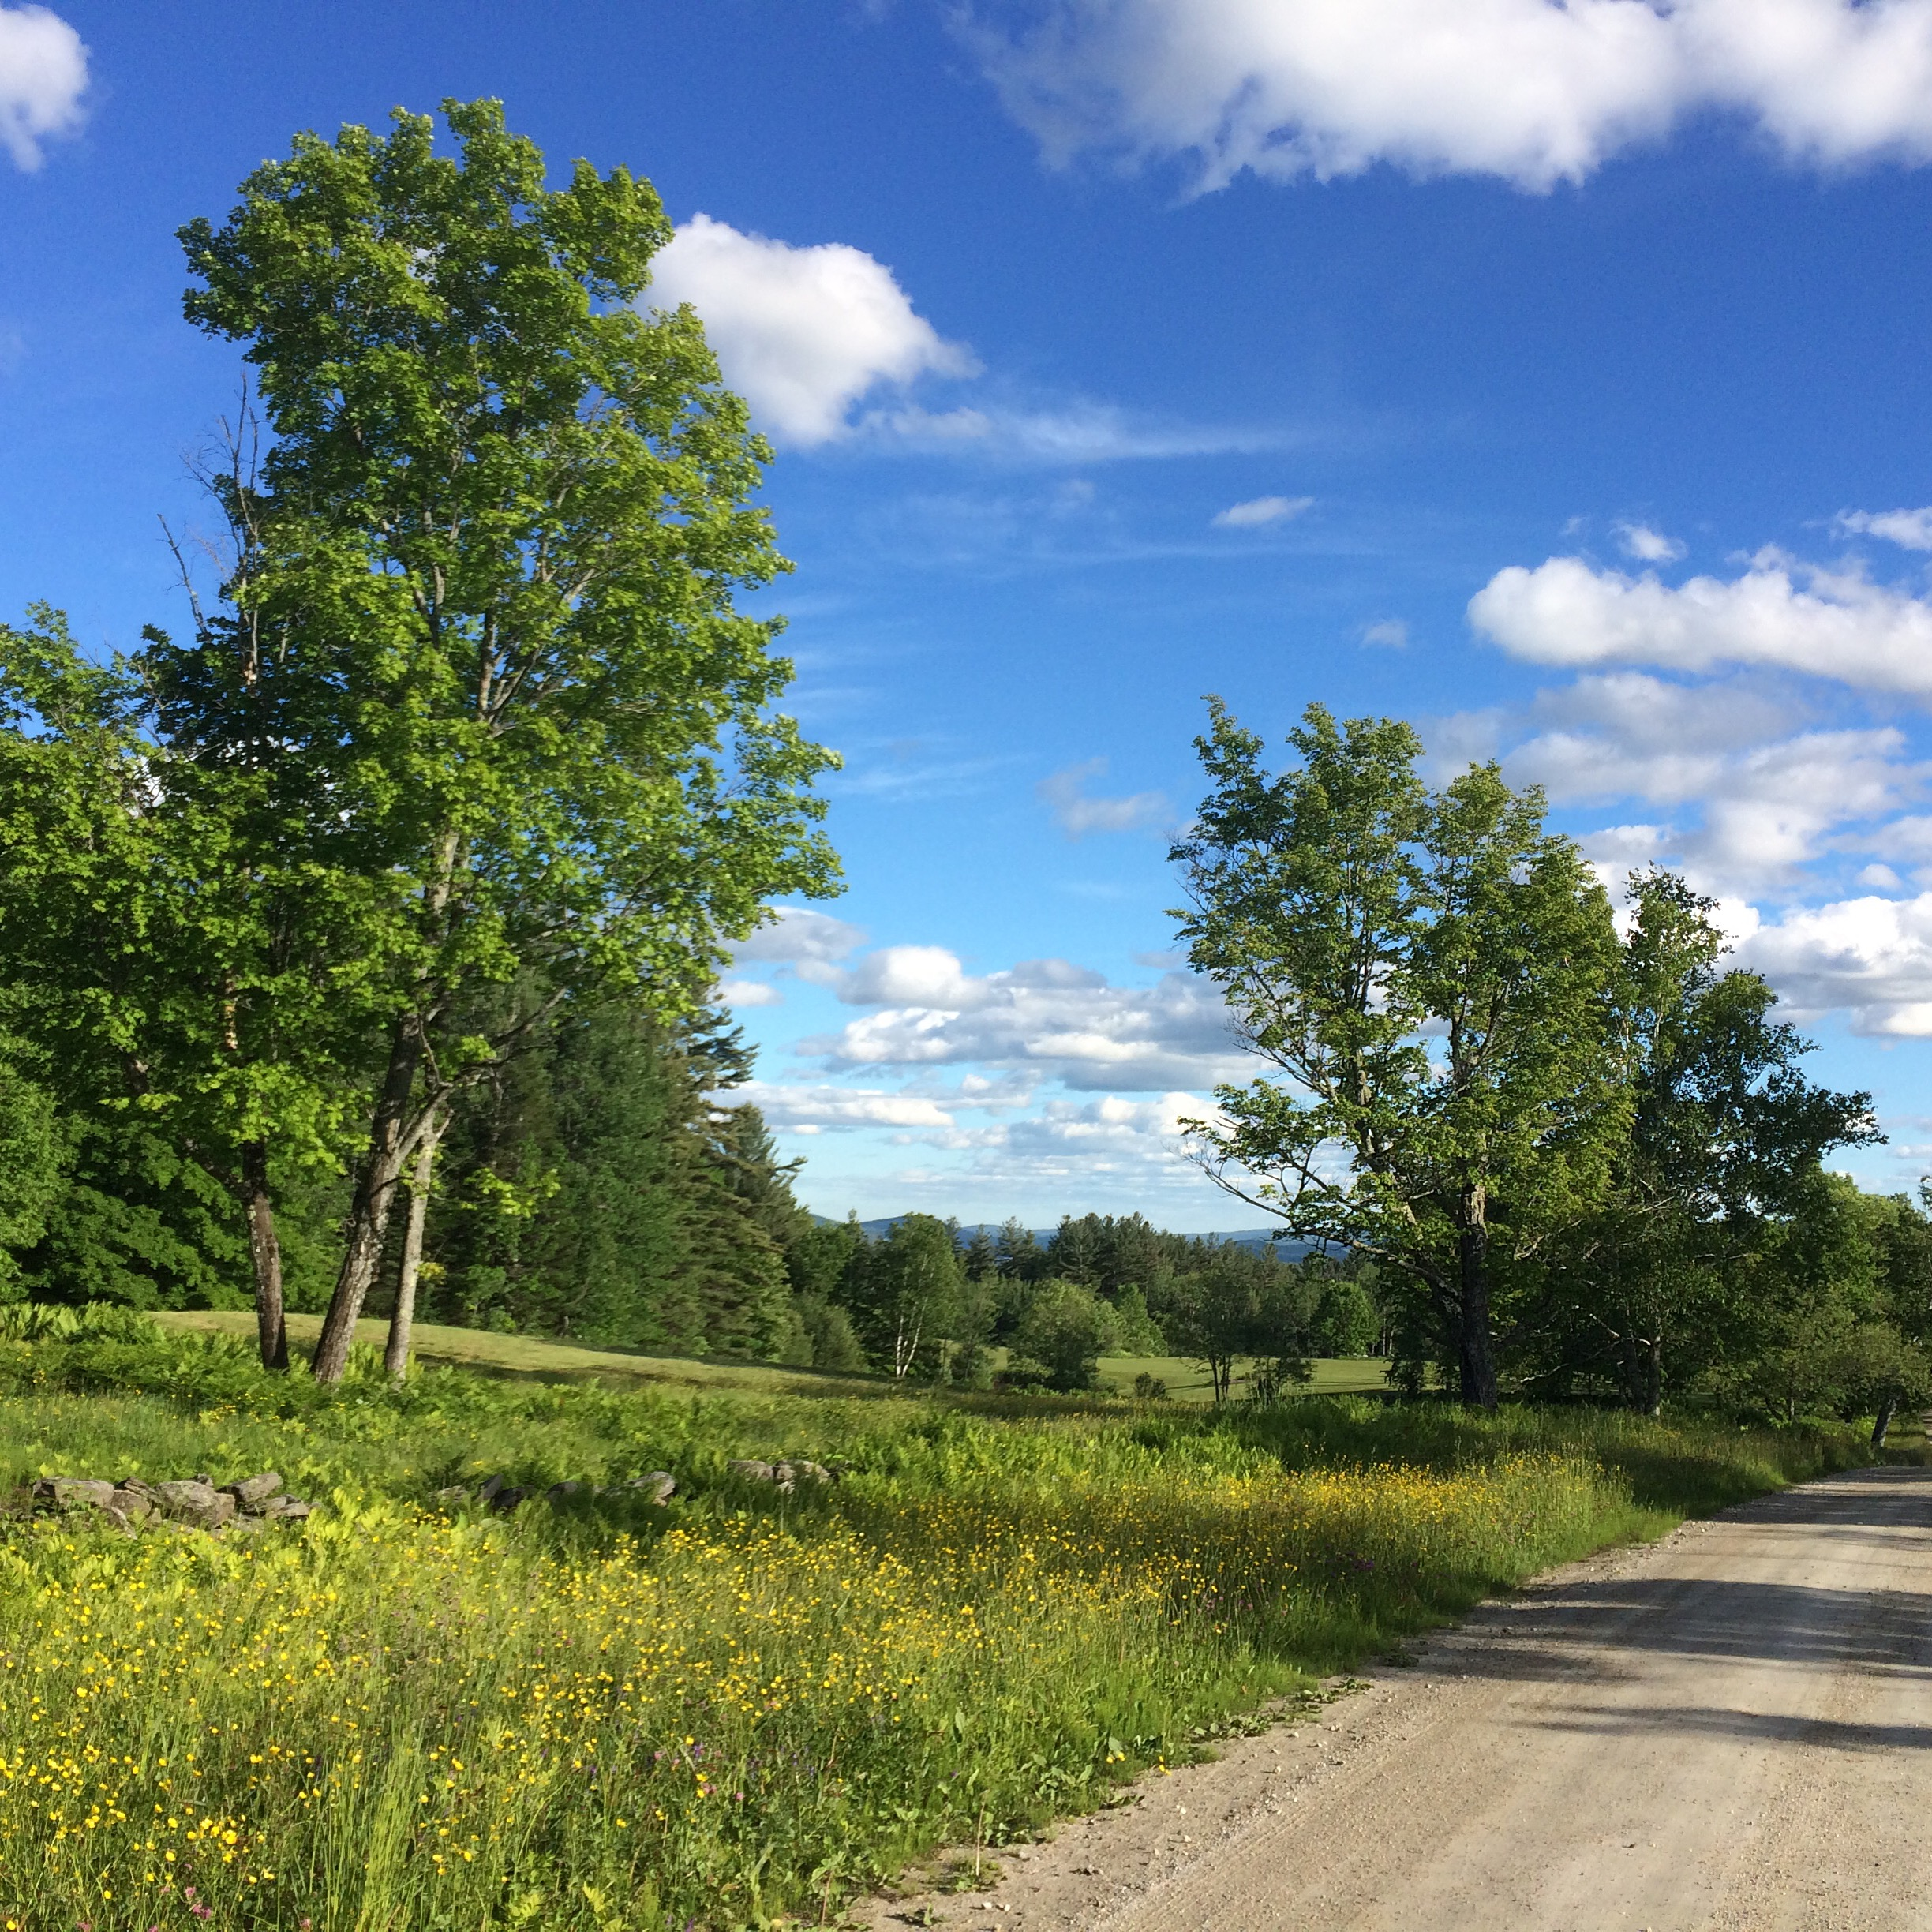 Summer Beauty on the Roads of Southern Vermont